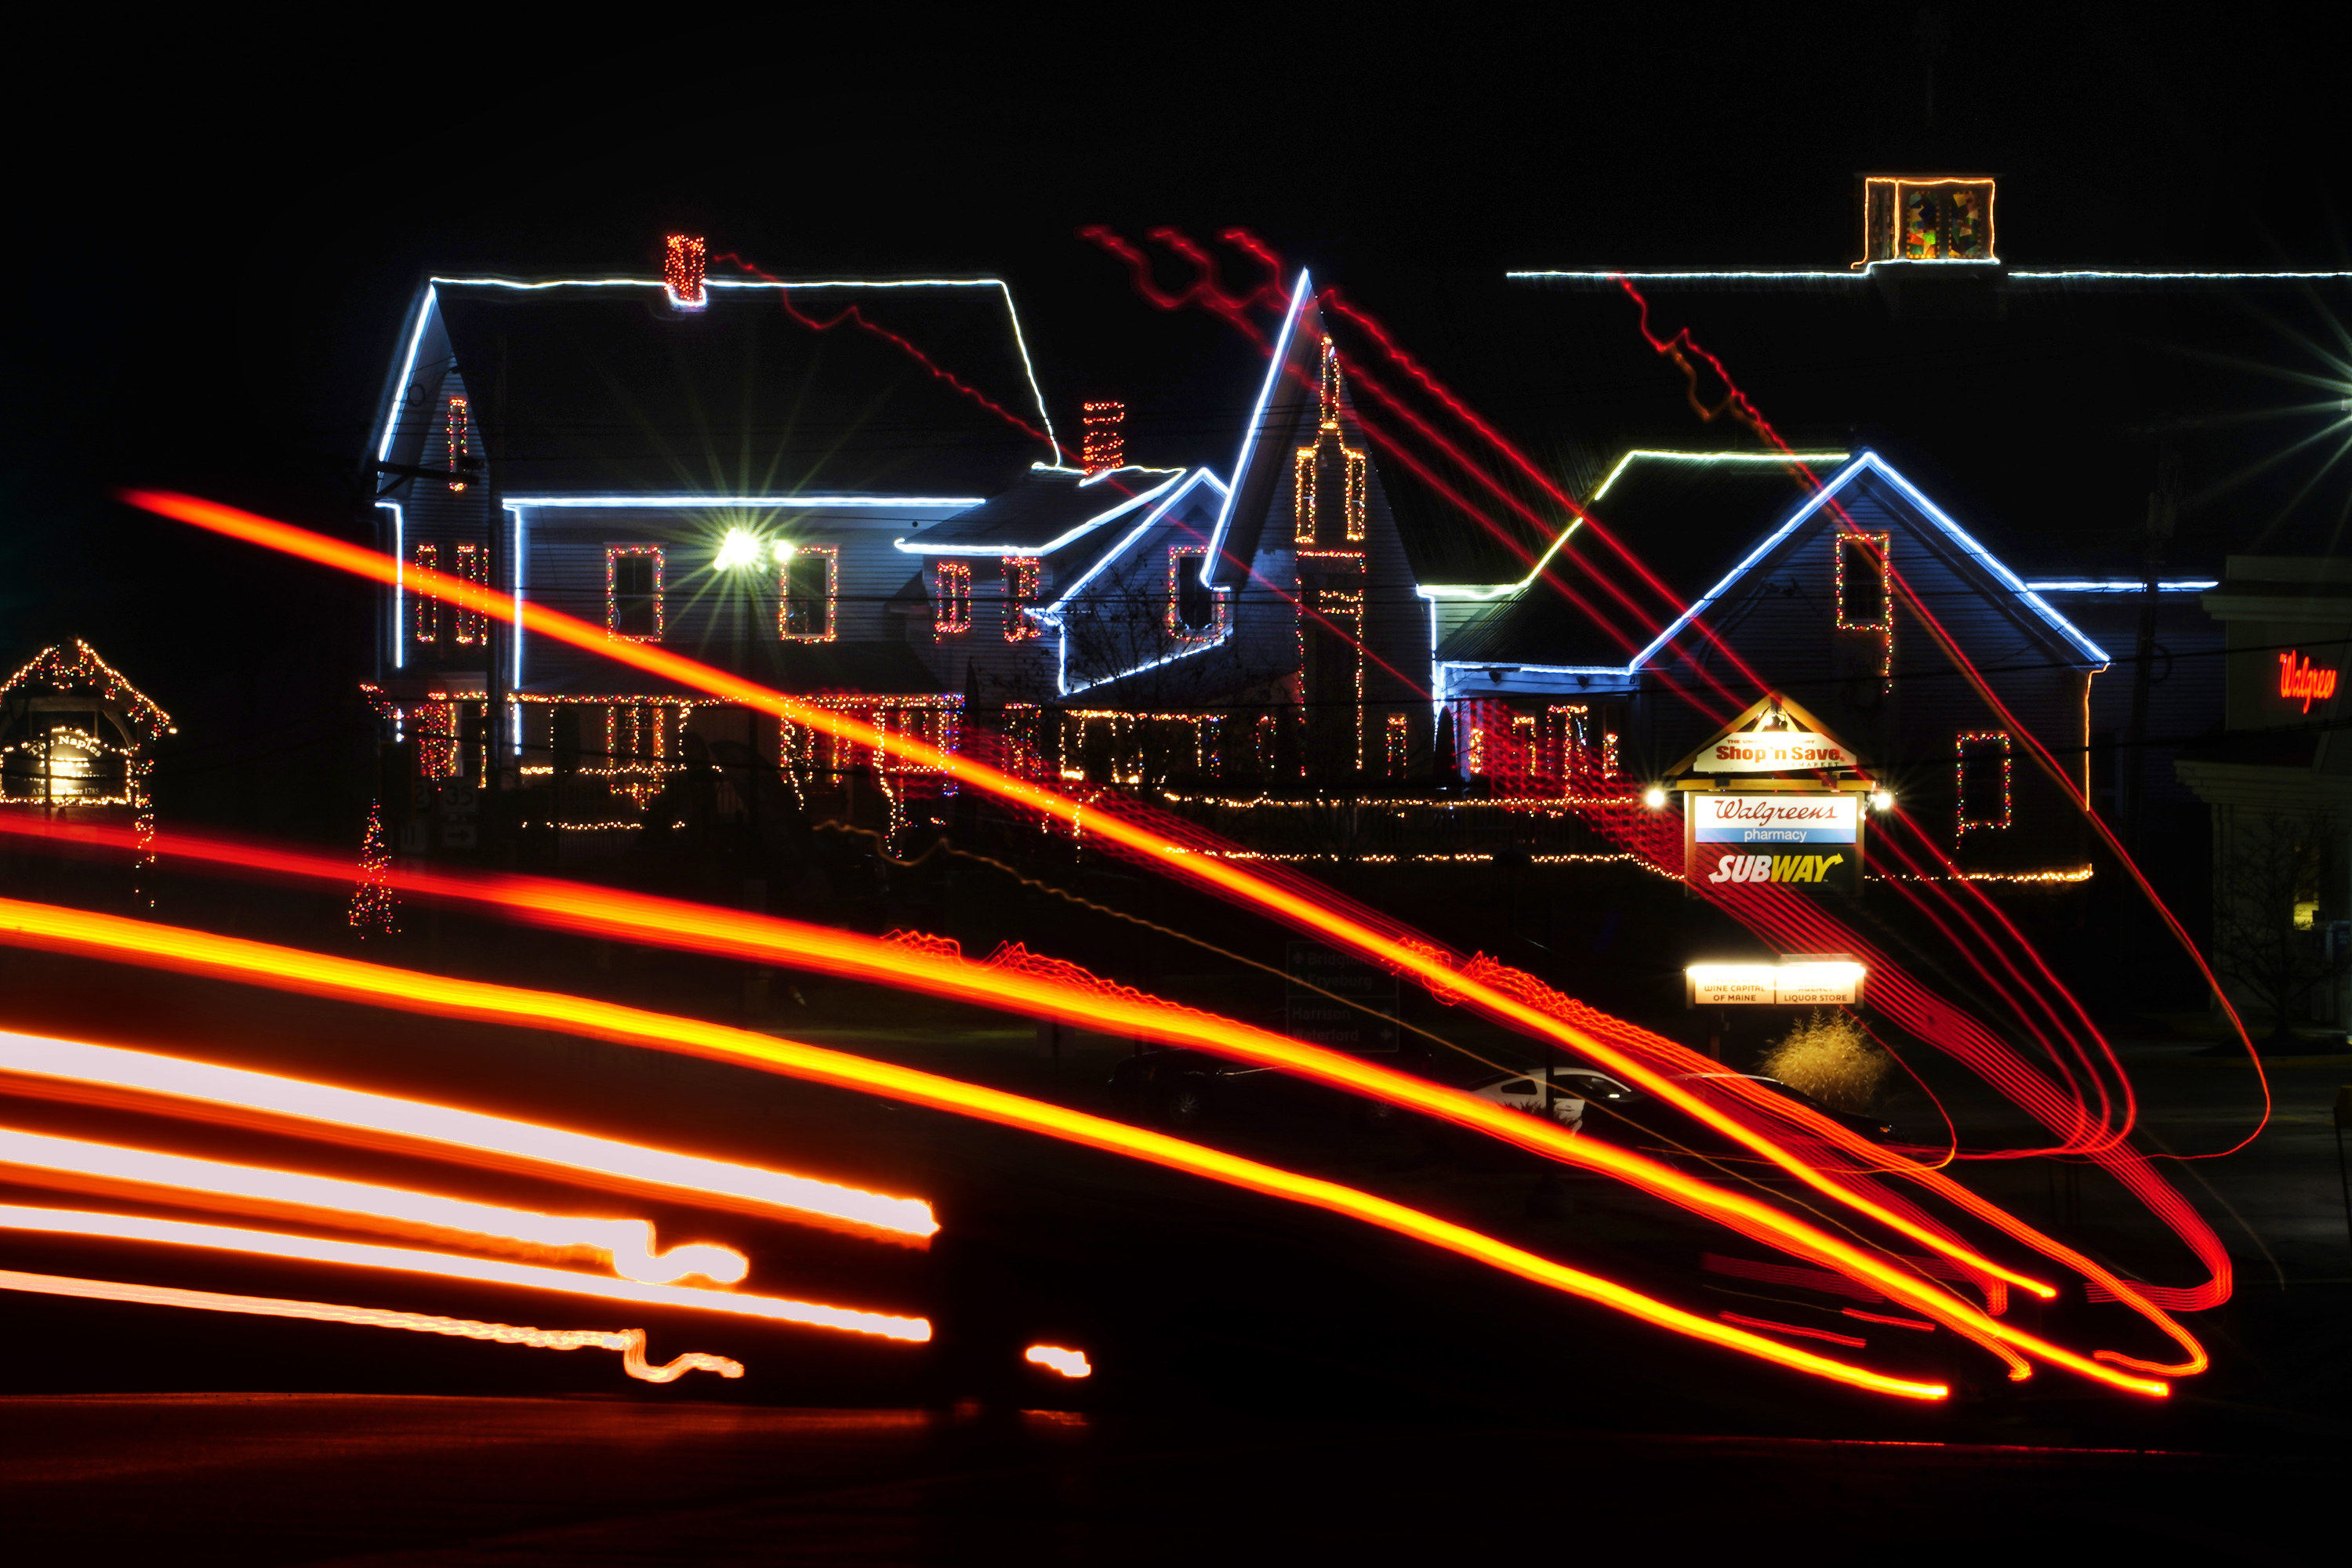 Bright lights in swooping colors, with a decorated house in the background.